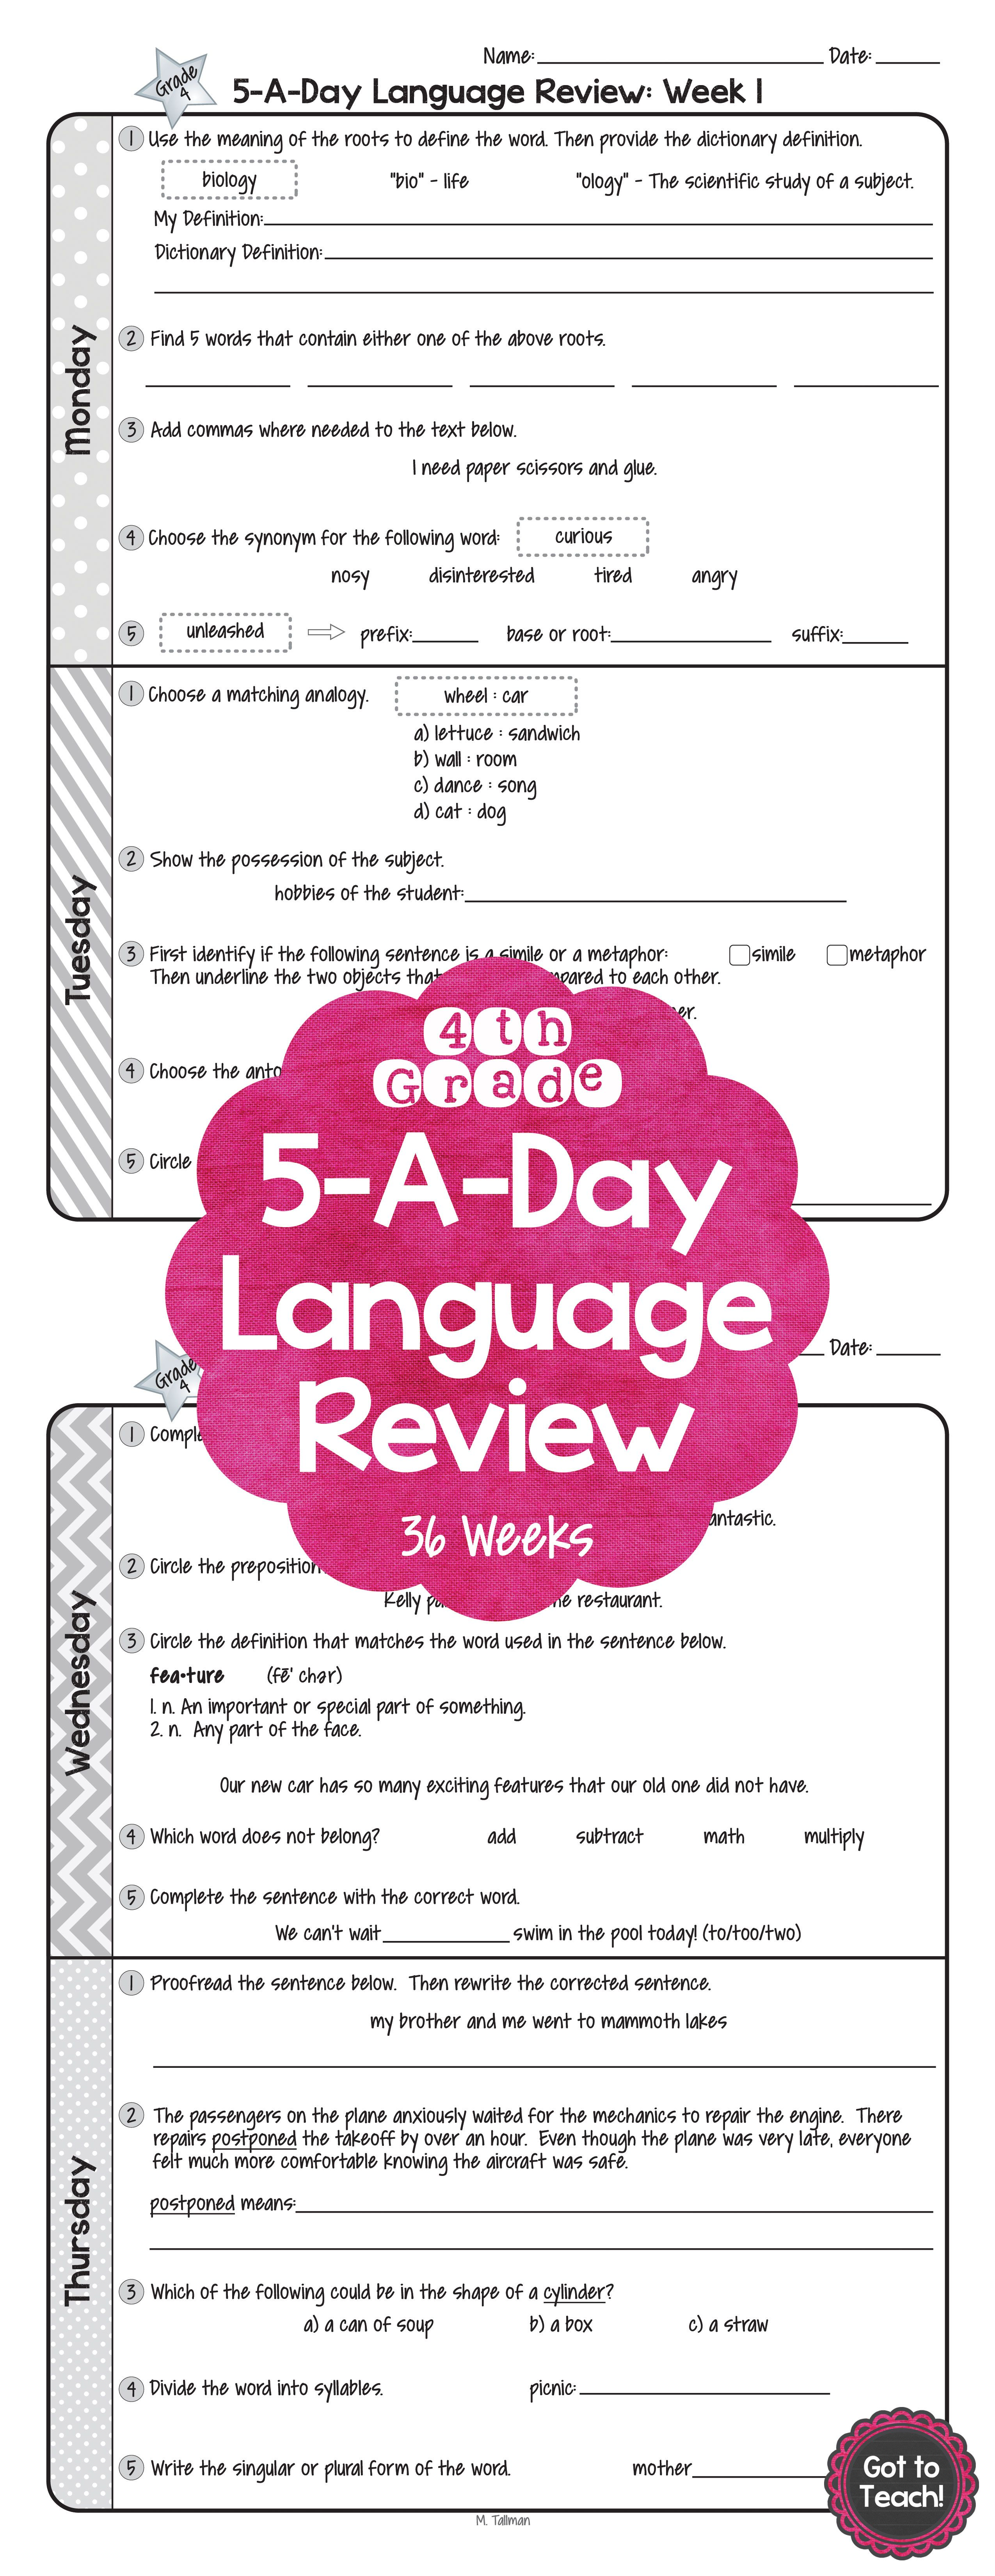 Worksheet Reading Material For 4th Graders spiral language homework for 4th grade 2 weeks free with answer 36 of daily common core review 5 a